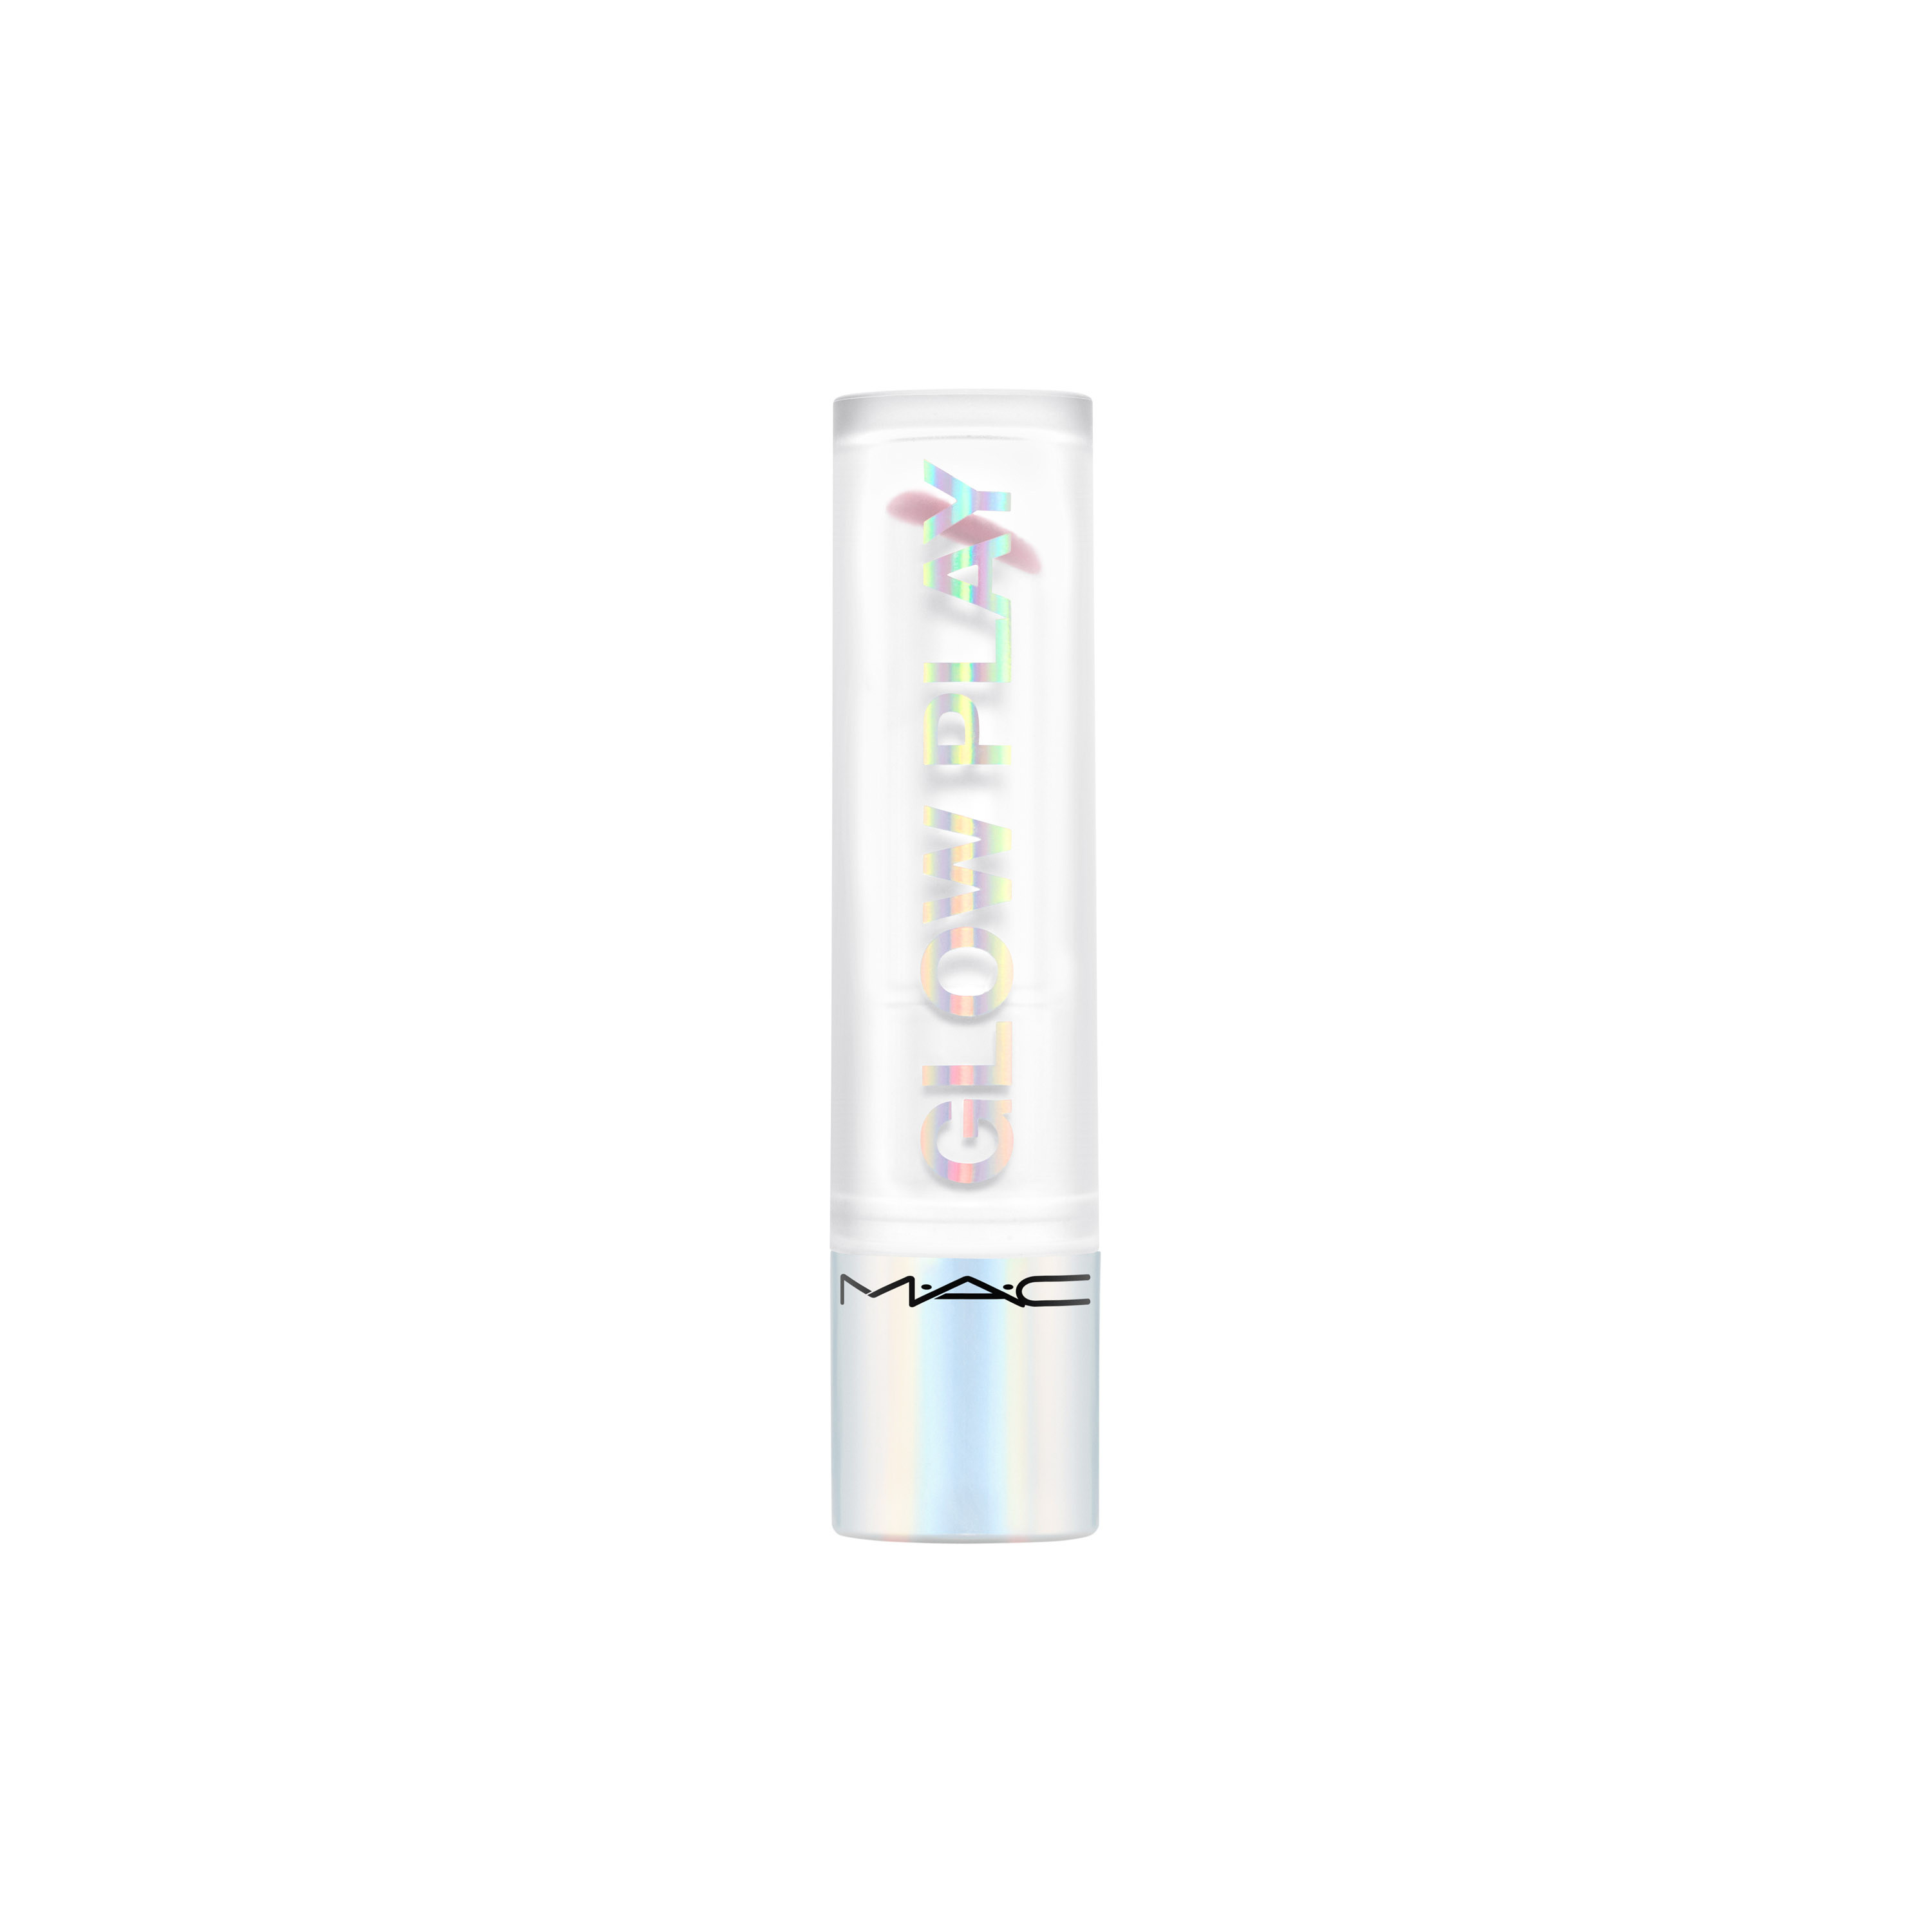 Glow Play Lip Balm - Grapely Admired, GRAPELY ADMIRED, large image number 2